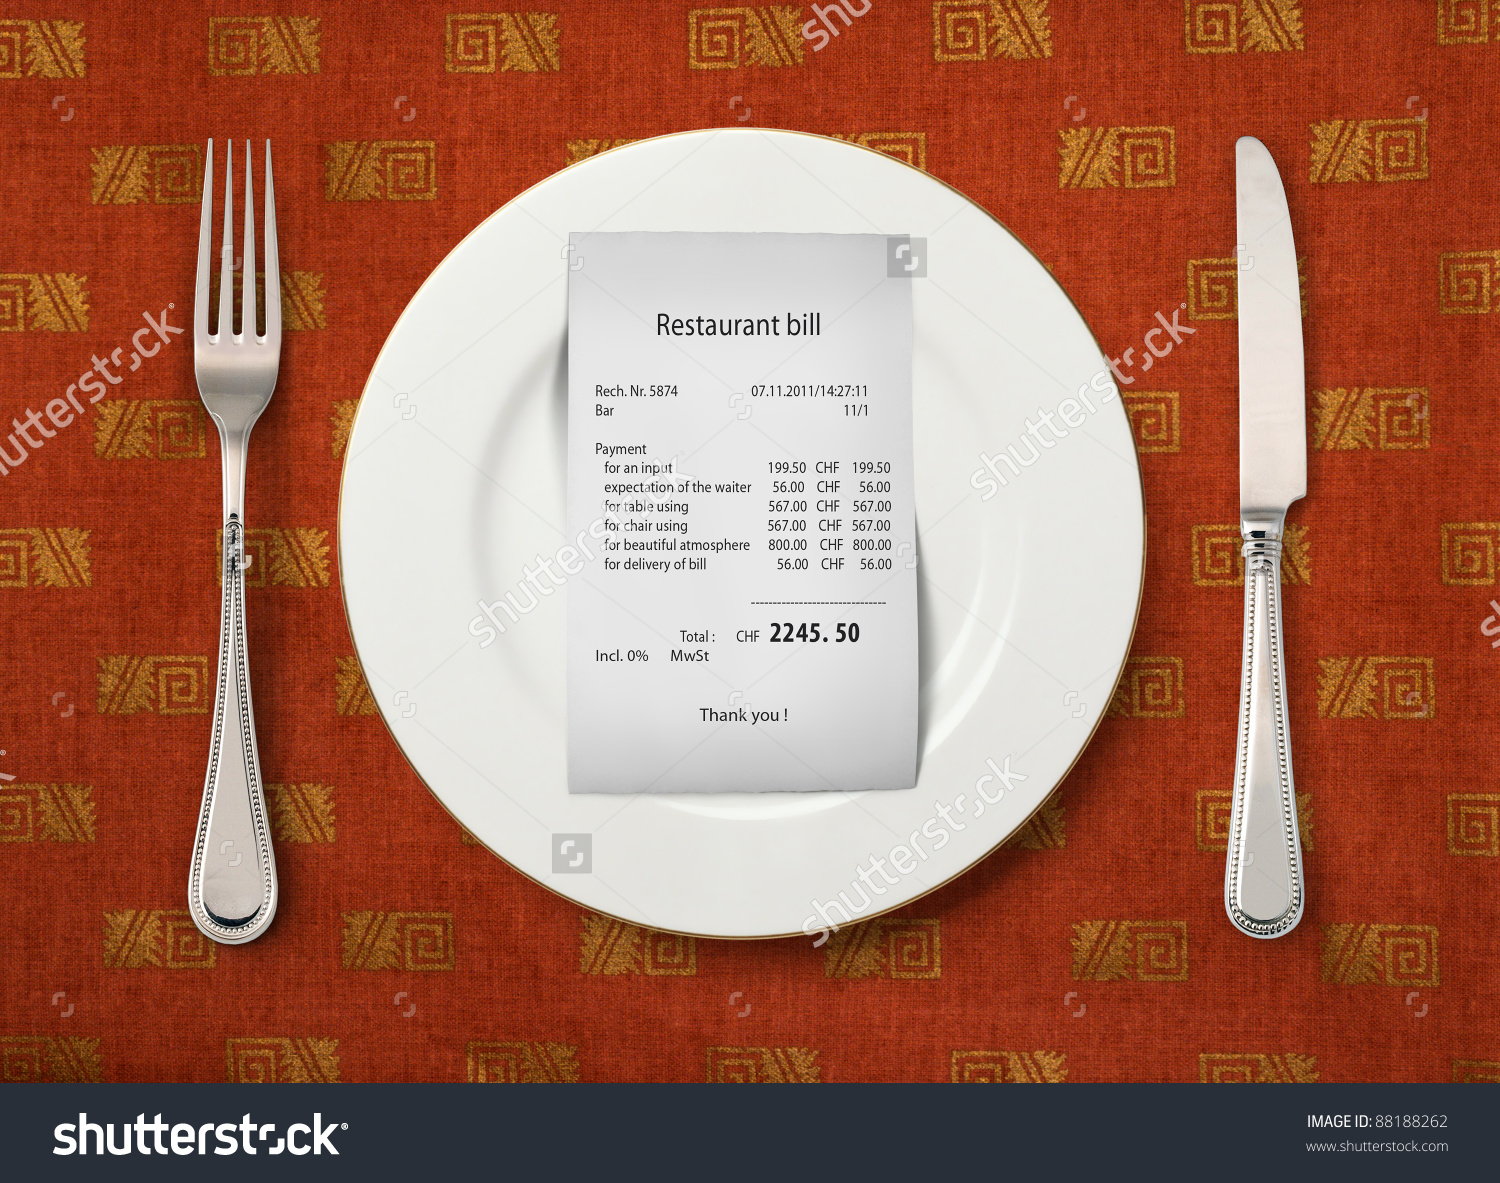 Bill On Empty Plate Restaurant Stock Photo 88188262.